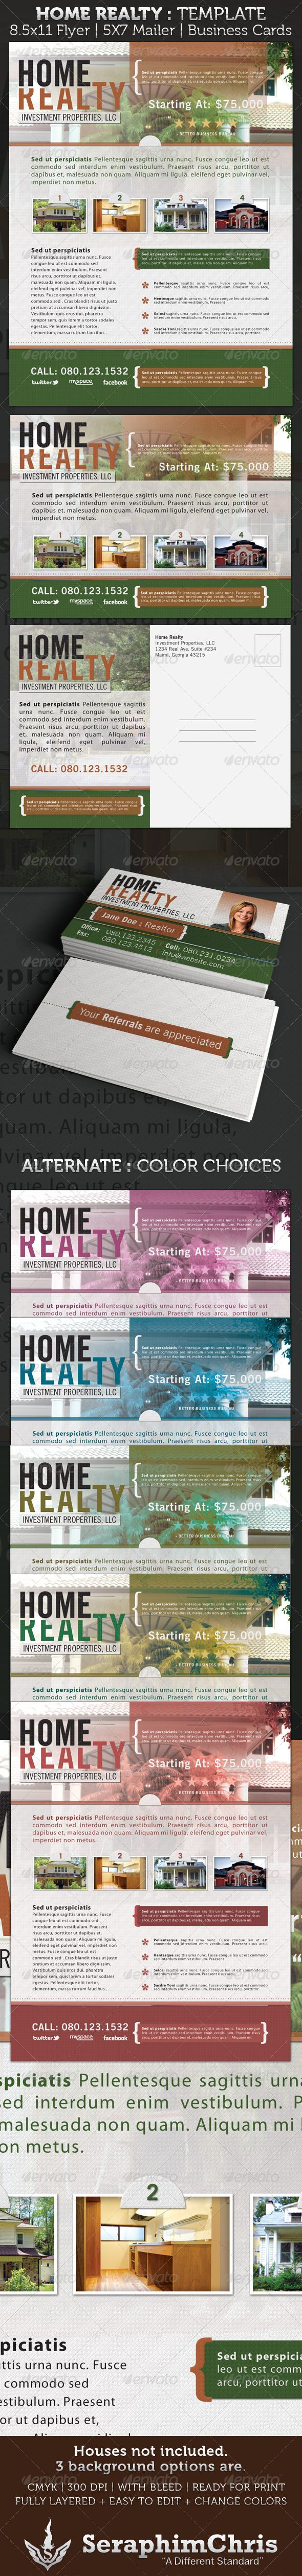 Home Realty Flyer, Mailer, & Business Card